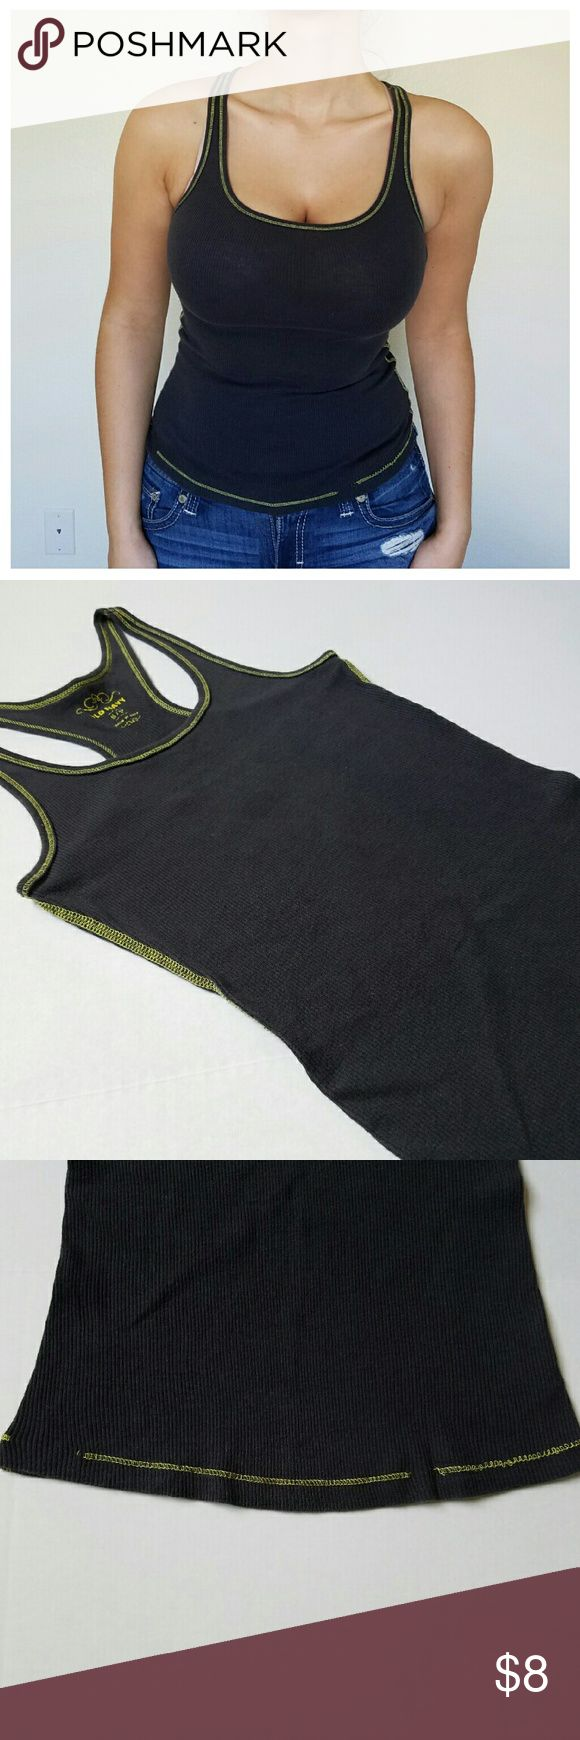 NWOT Charcoal Ribbed Razorback Tank New without tags condition charcoal ribbed racerback tank with yellow stitching detailing all over. Yellow stitching is broken at the bottom of the front of the tank as pictured and photo 3. All other stitching is intact. Tank is true to size. No other rips besides the break and stitching mentioned earlier and no stains. Old Navy Tops Tank Tops